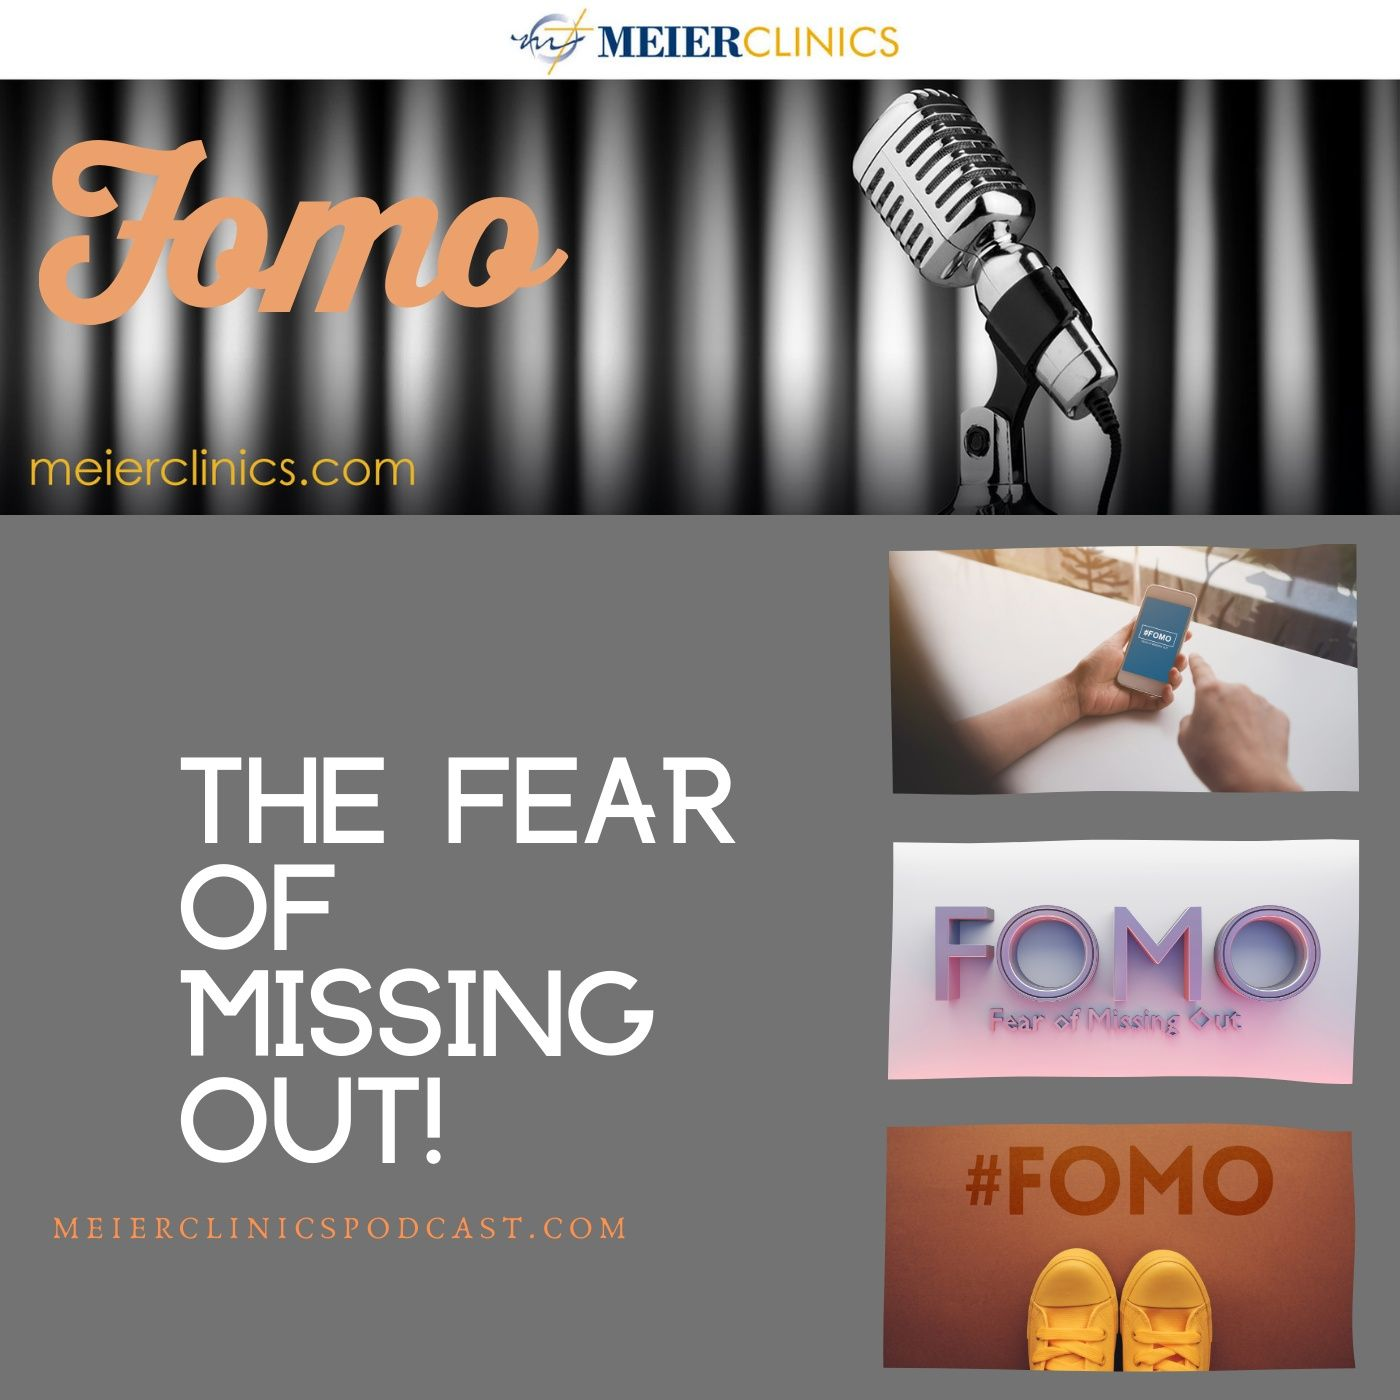 FOMO: The Fear of Missing Out!